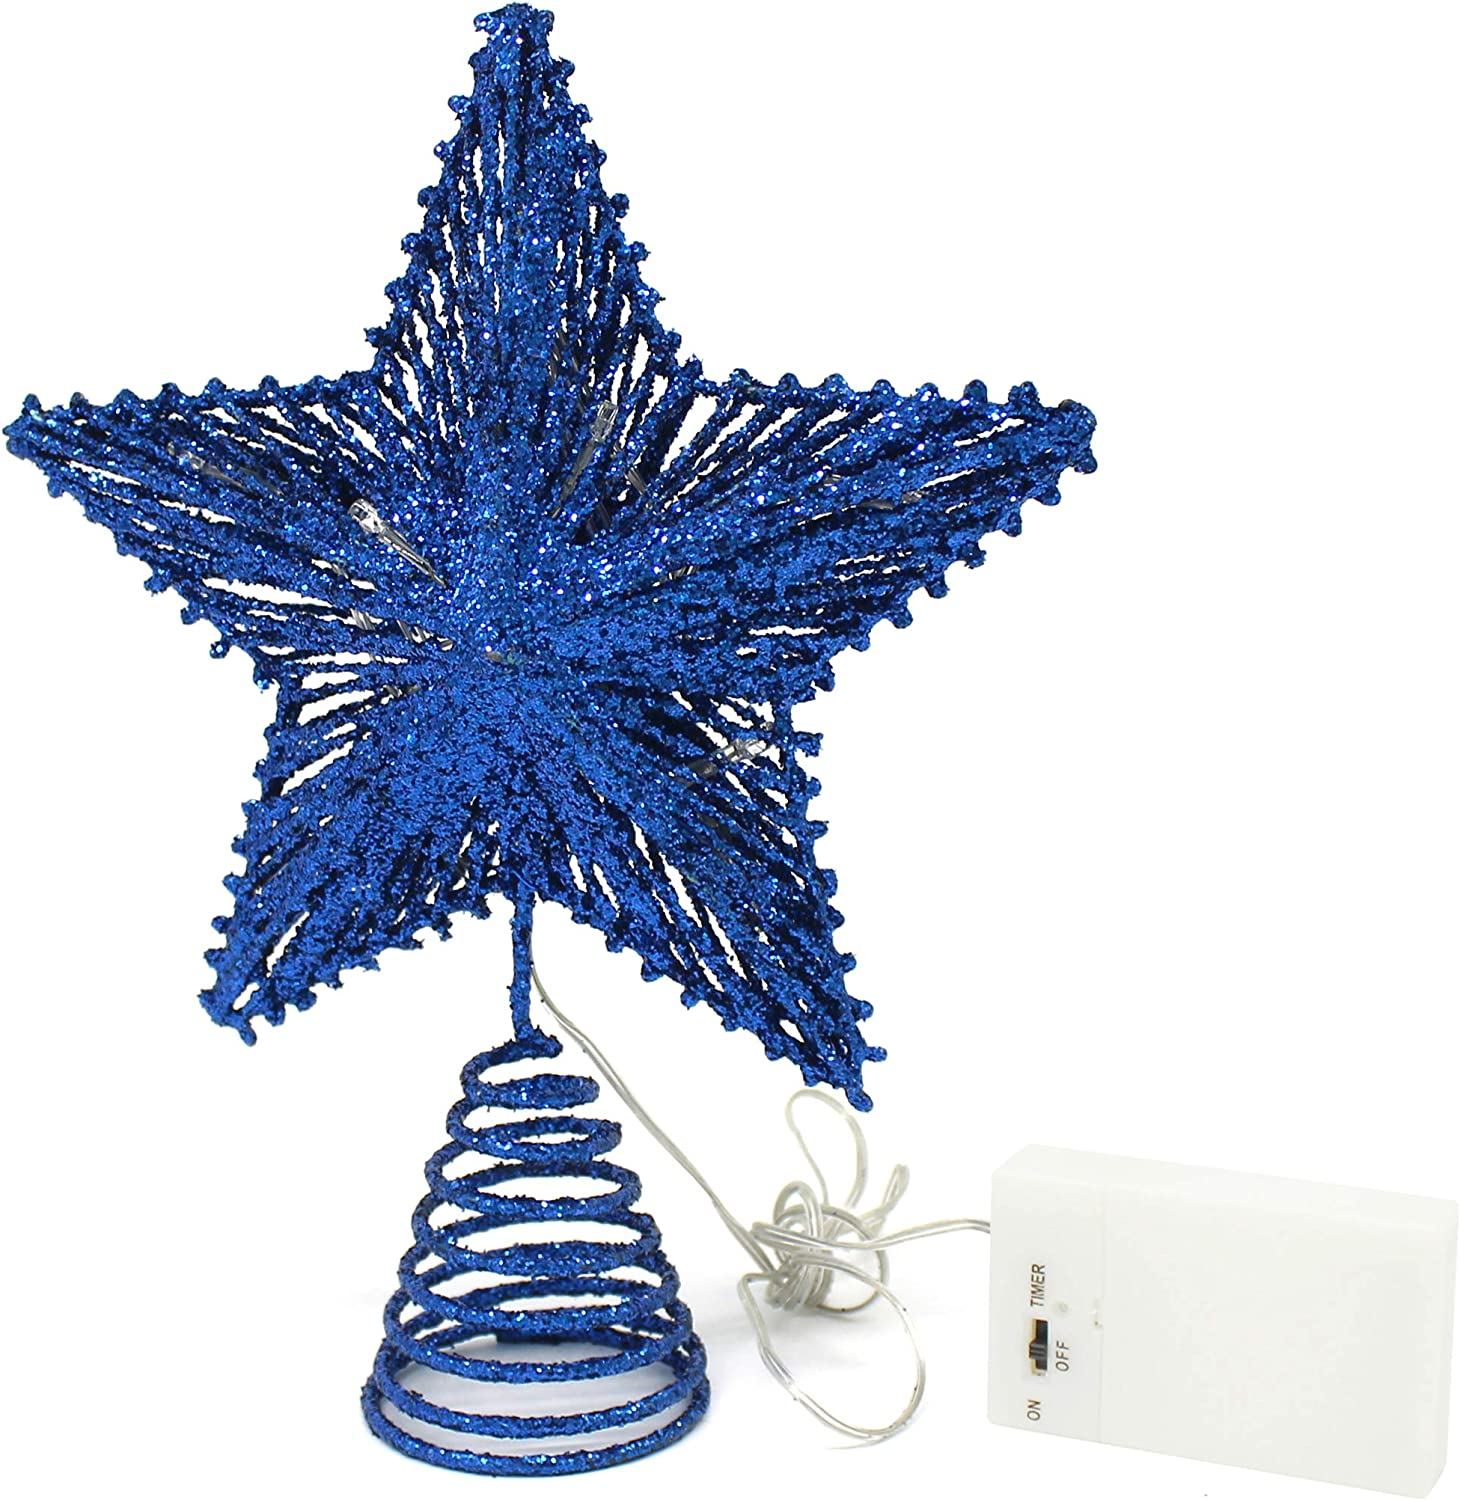 CVHOMEDECO. Blue Glittered 3D Tree Top Star with Warm White LED Lights and Timer for Christmas Tree Decoration and Holiday Seasonal Décor, 8 x 10 Inch